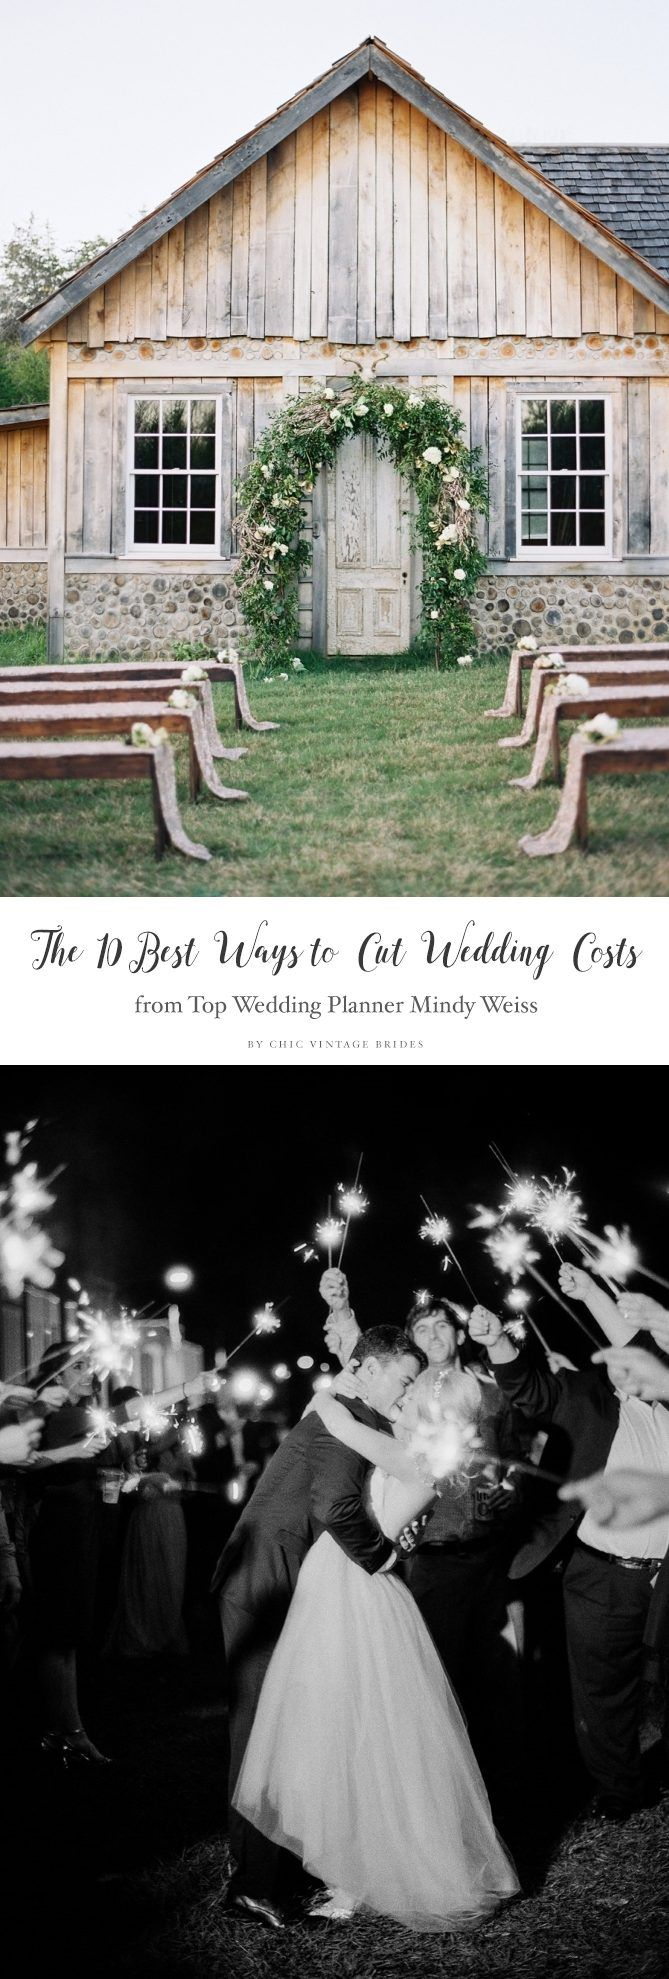 Best 25 Wedding Planner Cost Ideas On Pinterest Planning Checklist To Do List And Pictures